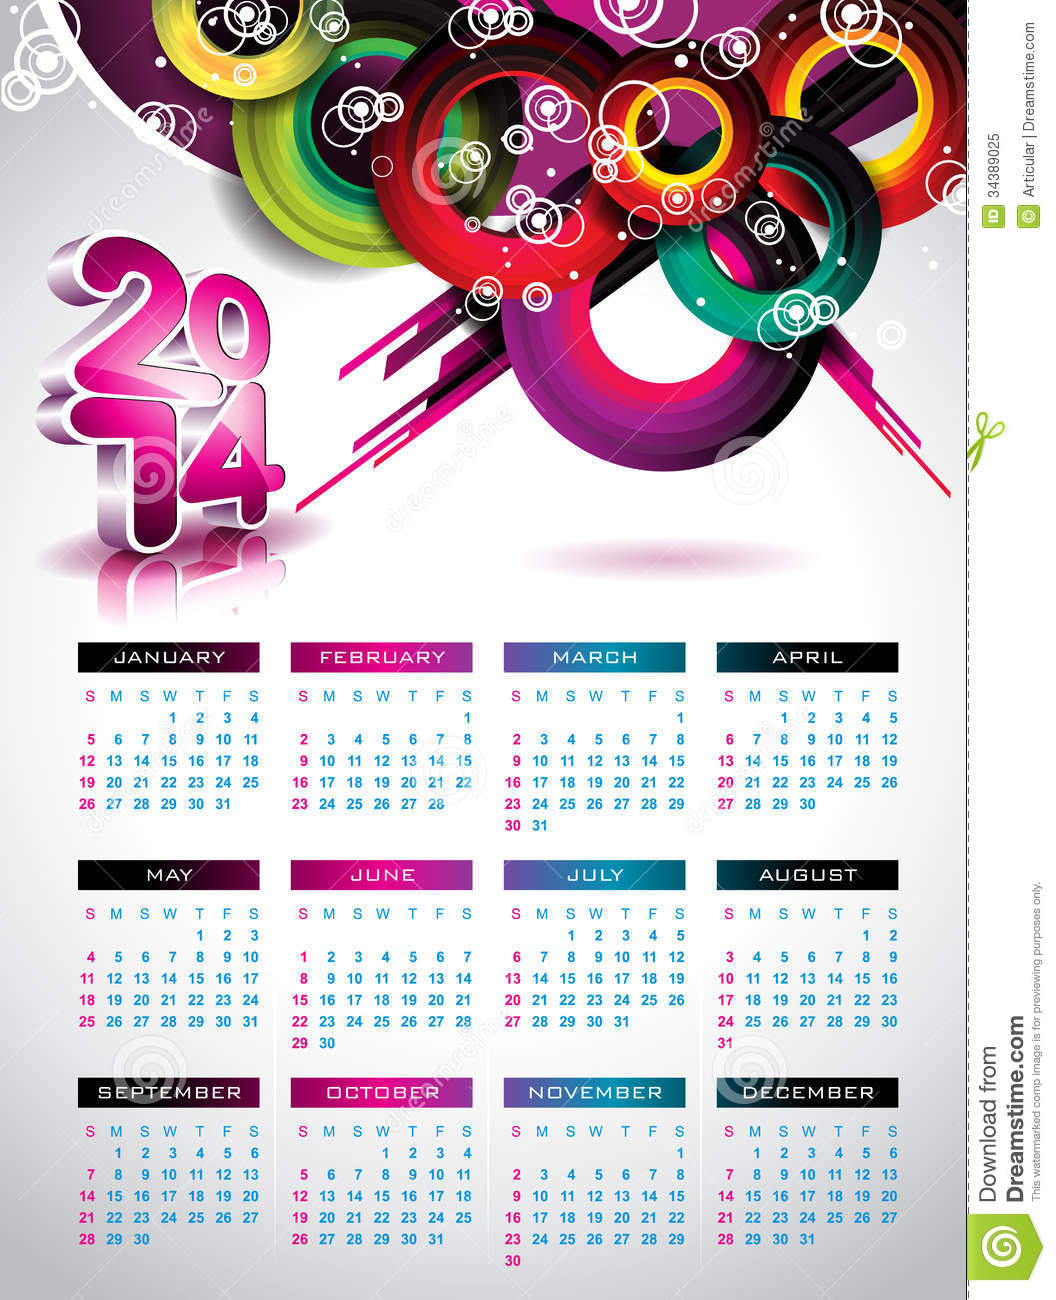 Calendar Month Illustration : Vector calendar illustration stock